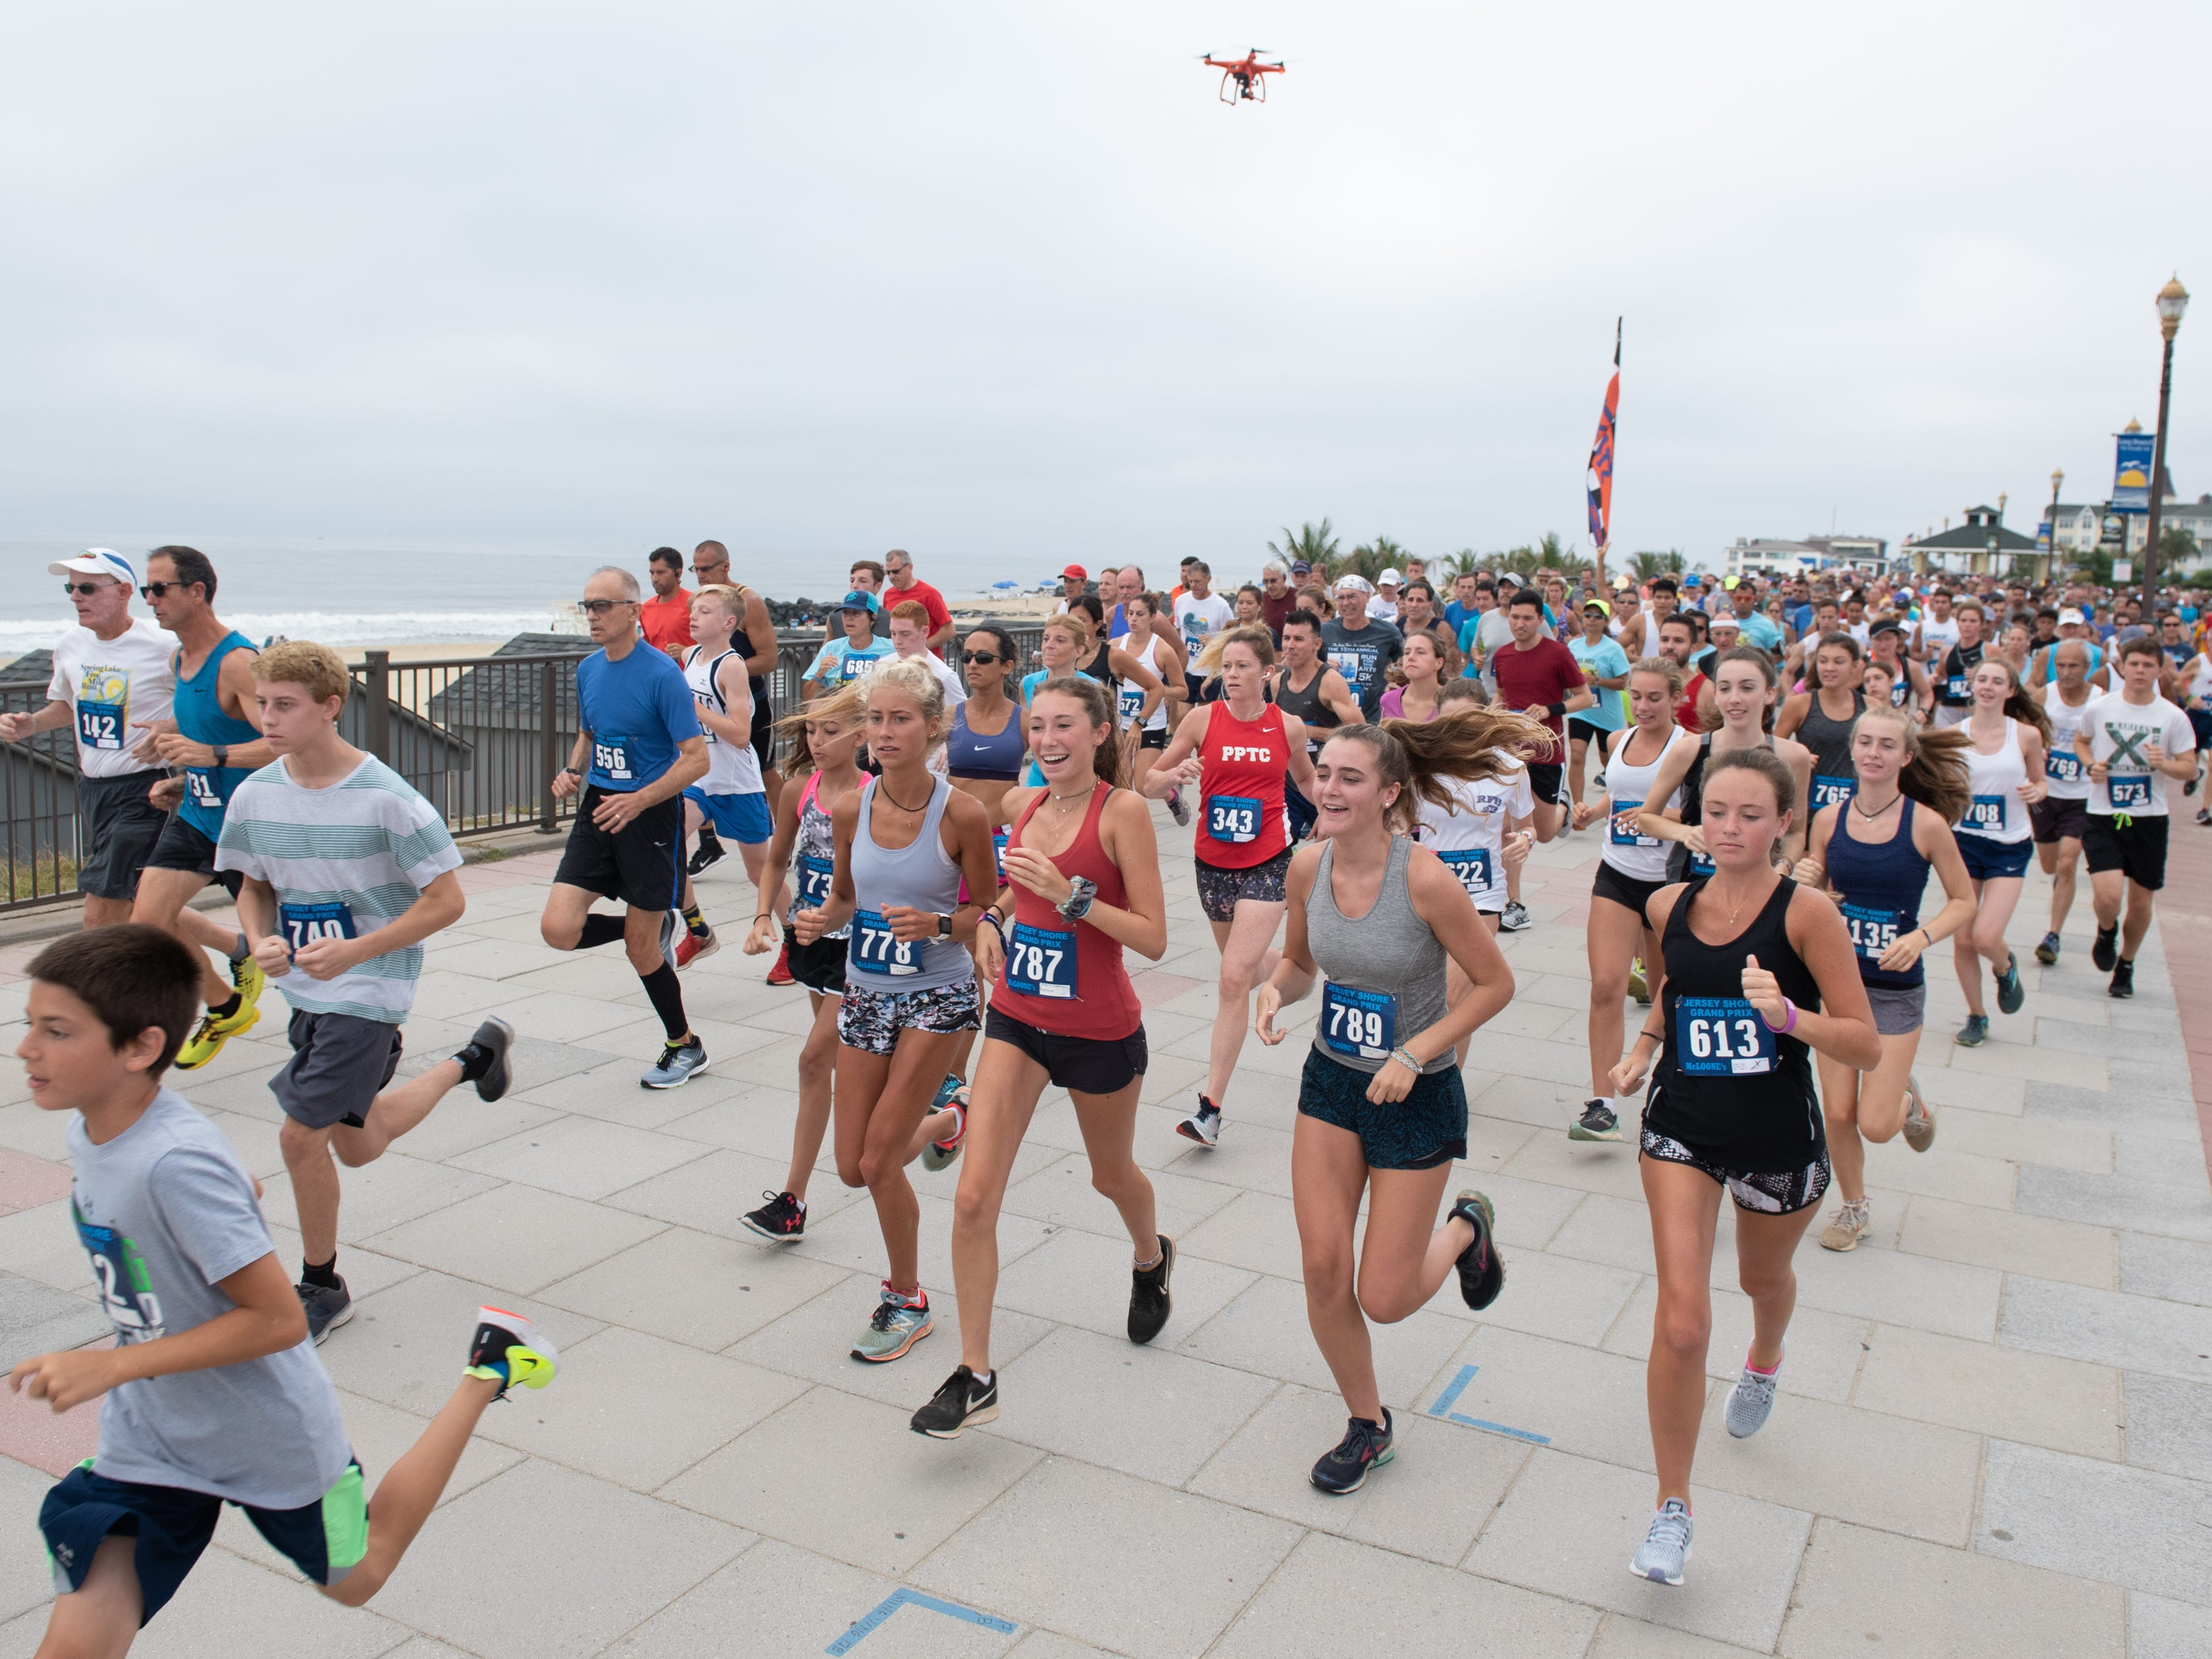 A drone follows the progress at the start of the race. The Pier House 5K run was held along the ocean in the north end of Long Branch on Monday, September 3, 2018.  / Russ DeSantis for the Asbury Park Press